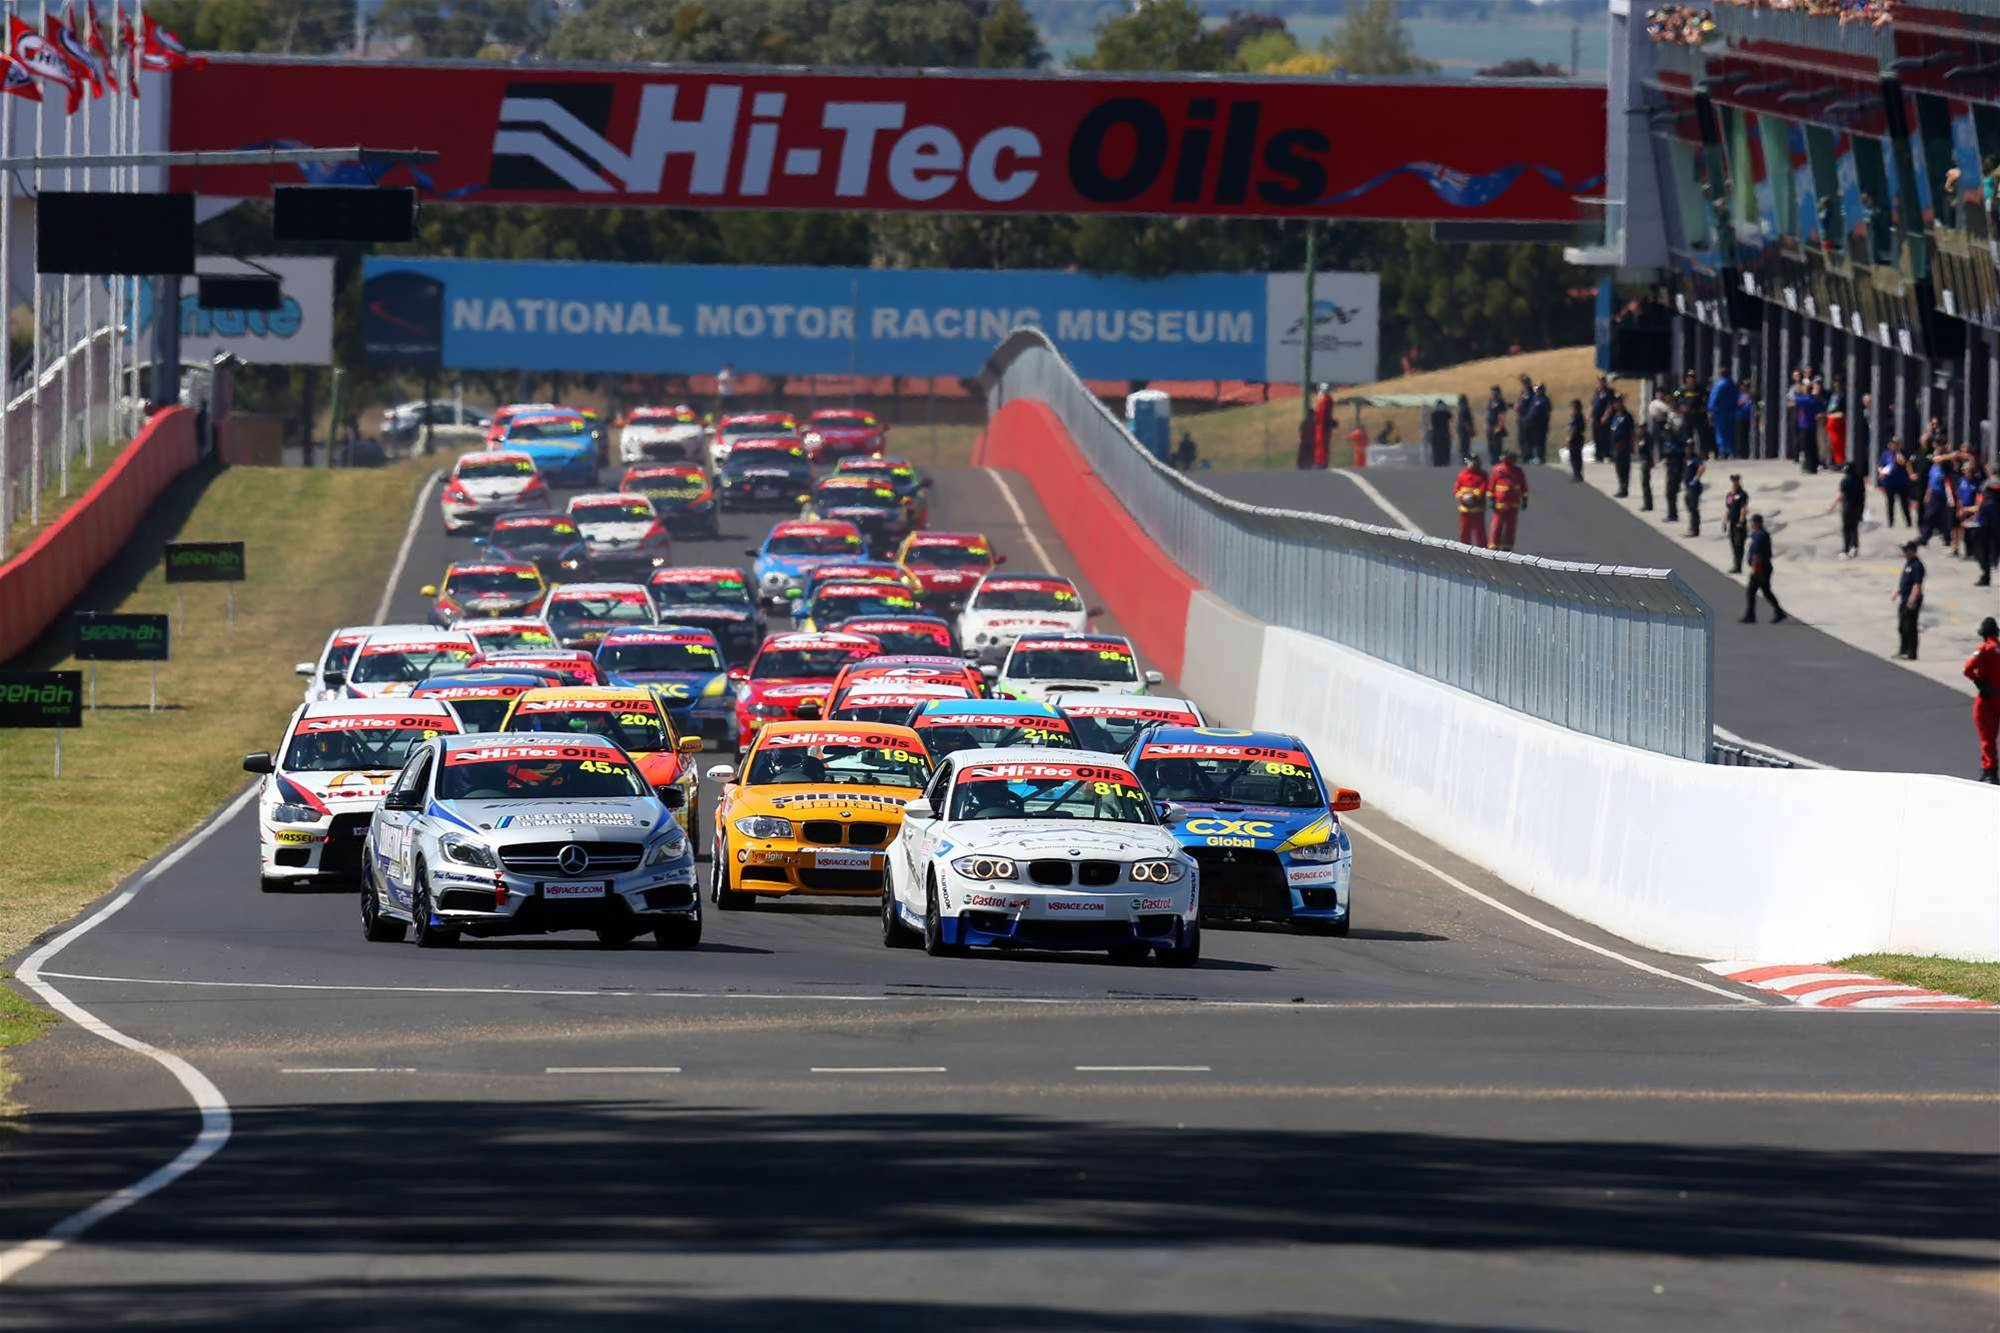 Production car racing poised for growth year